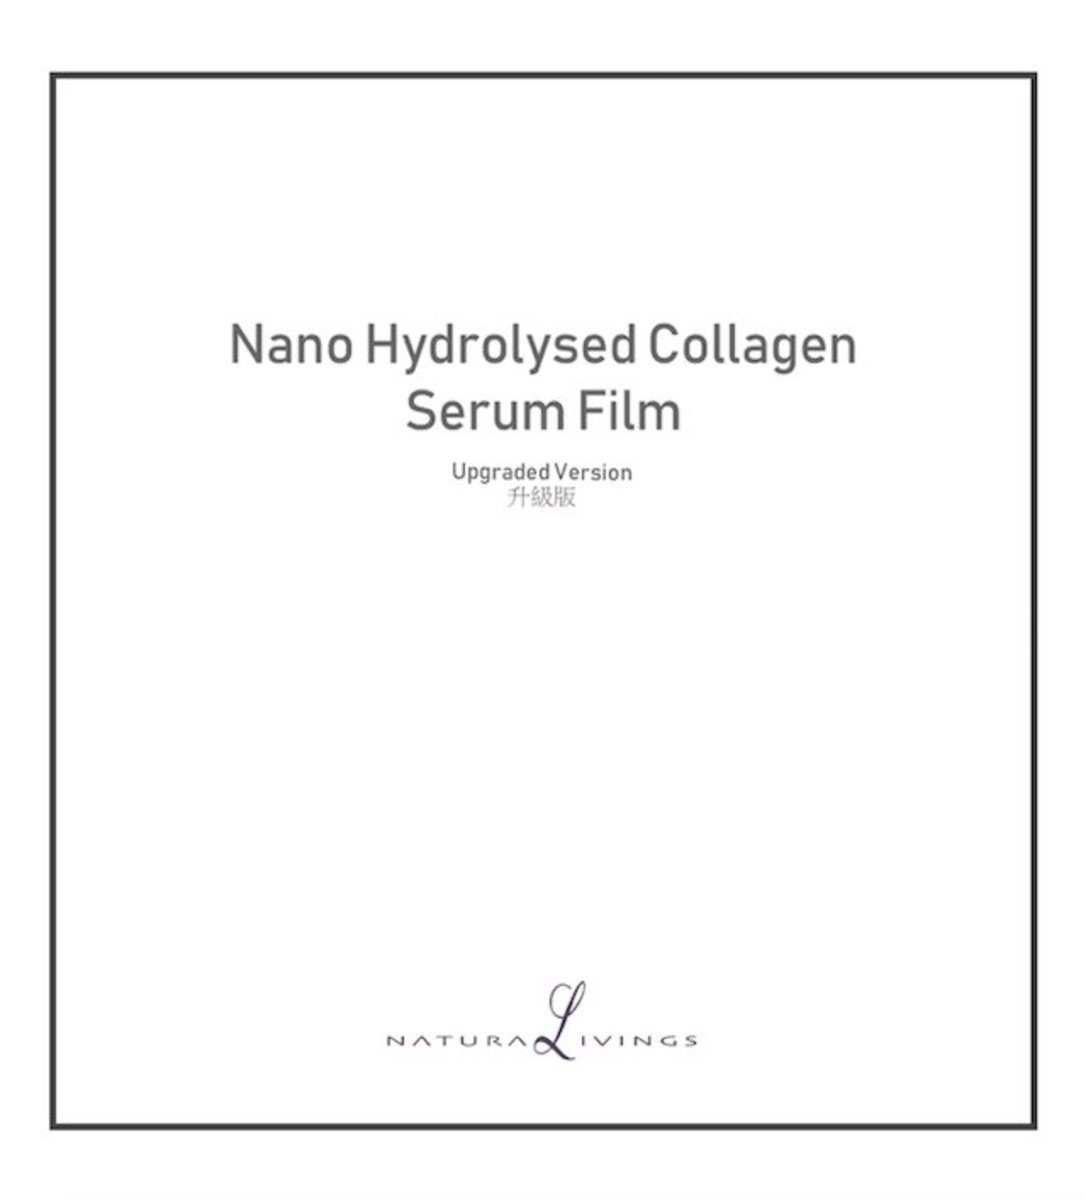 Nano Hydrolysed Collagen Serum Film (5 +1 sheets) - Trial Special